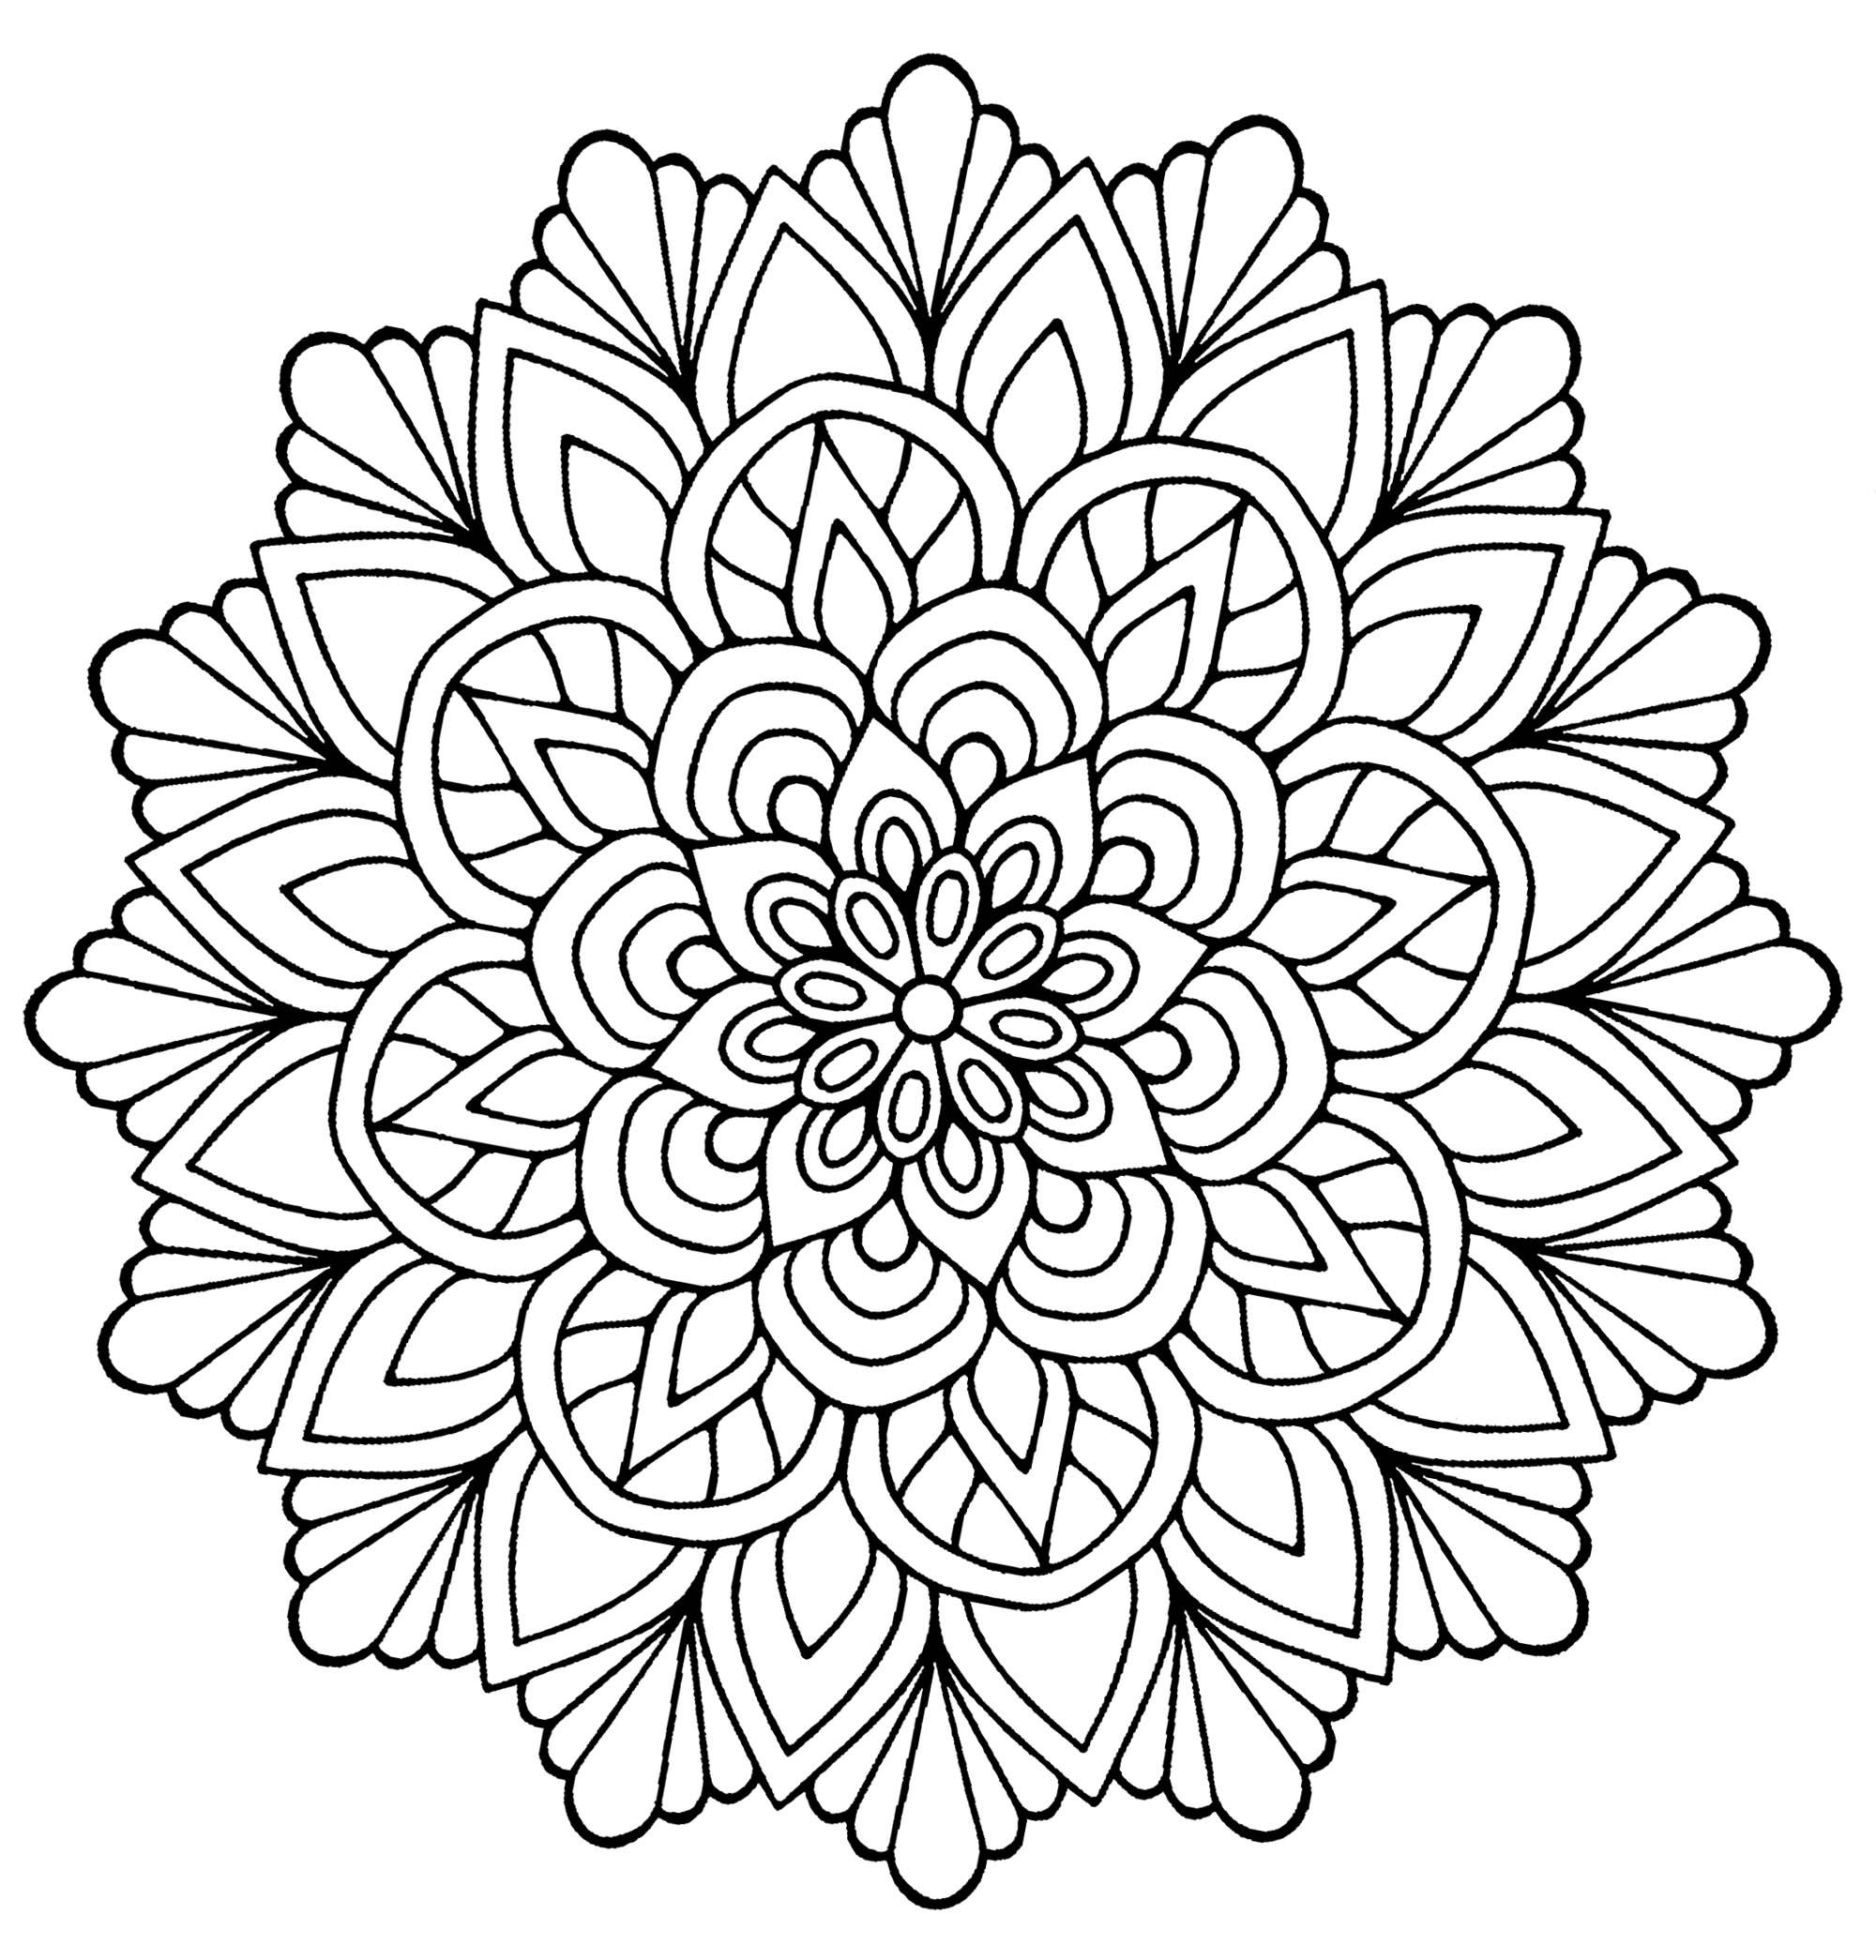 mandala pages mandala coloring pages for kids to download and print for free pages mandala